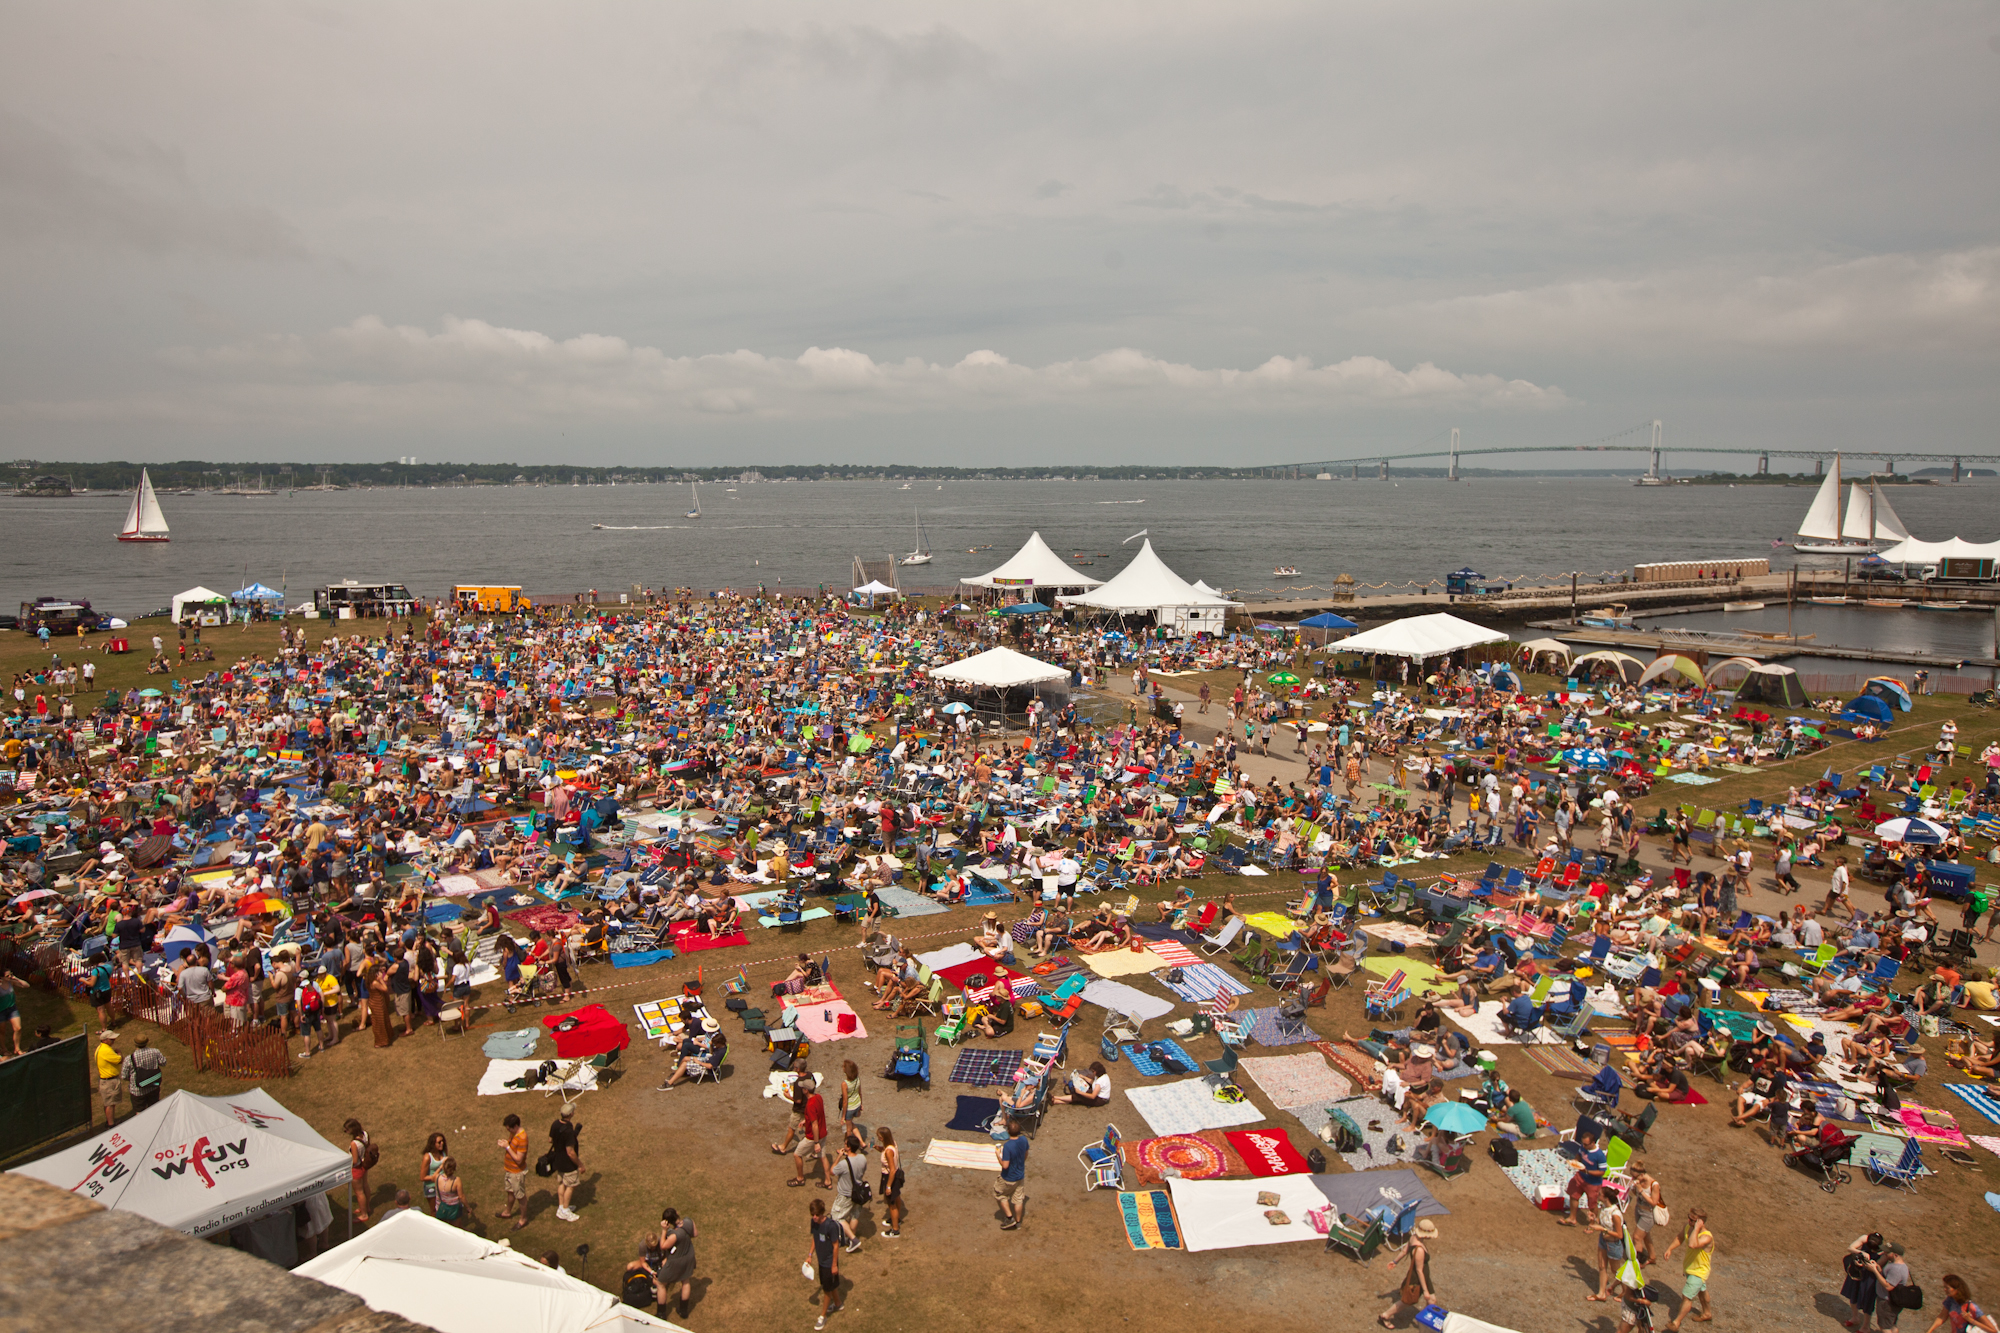 Over 10,000 people are gathered at the Newport Folk Festival this weekend.